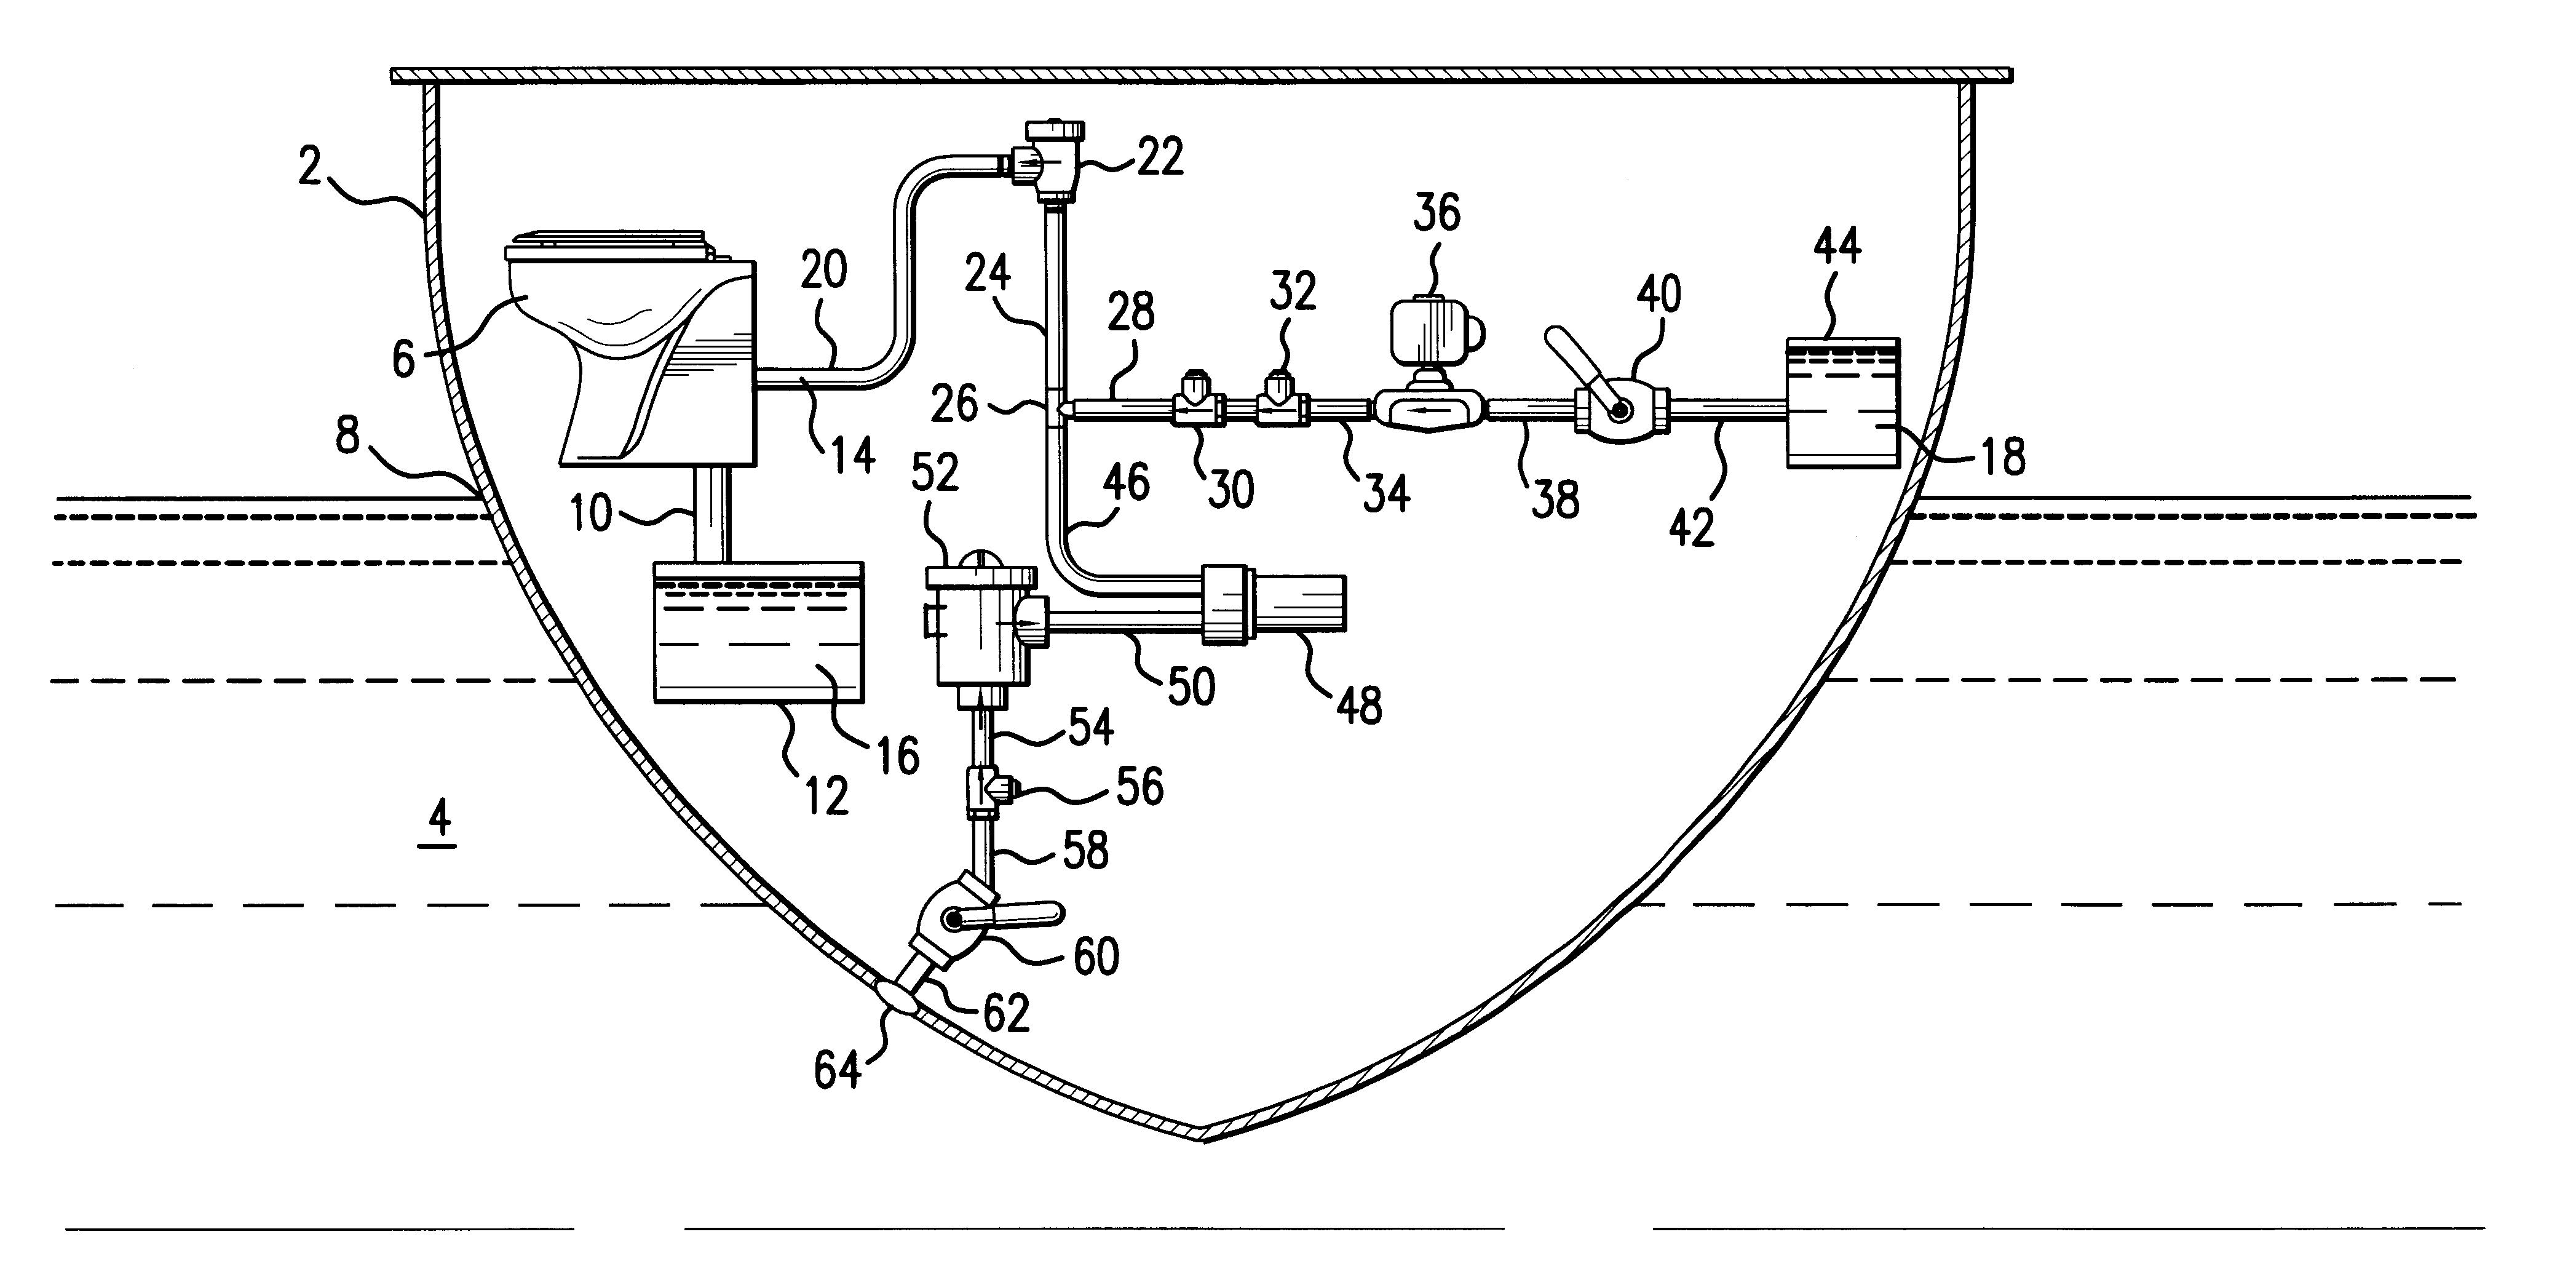 Wiring Schematic For Bennett Trim Tabs Diagram Hydraulic Free Download Diagrams Jabsco Macerator Pump Odicis Tab Electrical